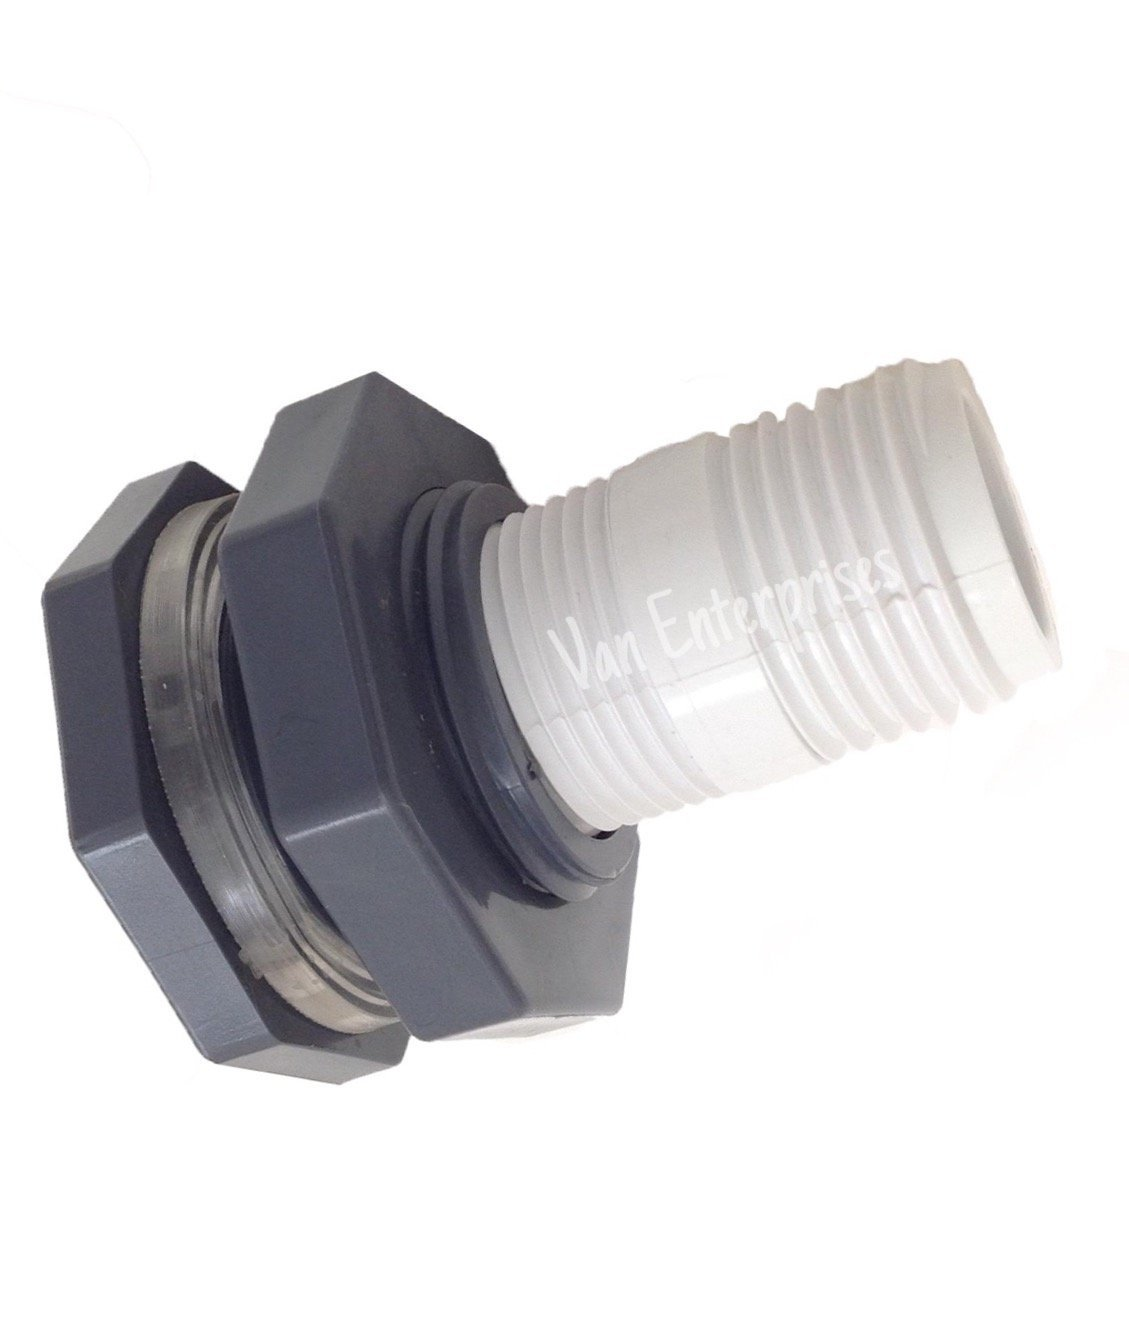 3/4'' Bulkhead Fitting with Garden Hose Adapter Kit For Rain Barrels, Aquariums, Water Tanks, Tubs, Ponds